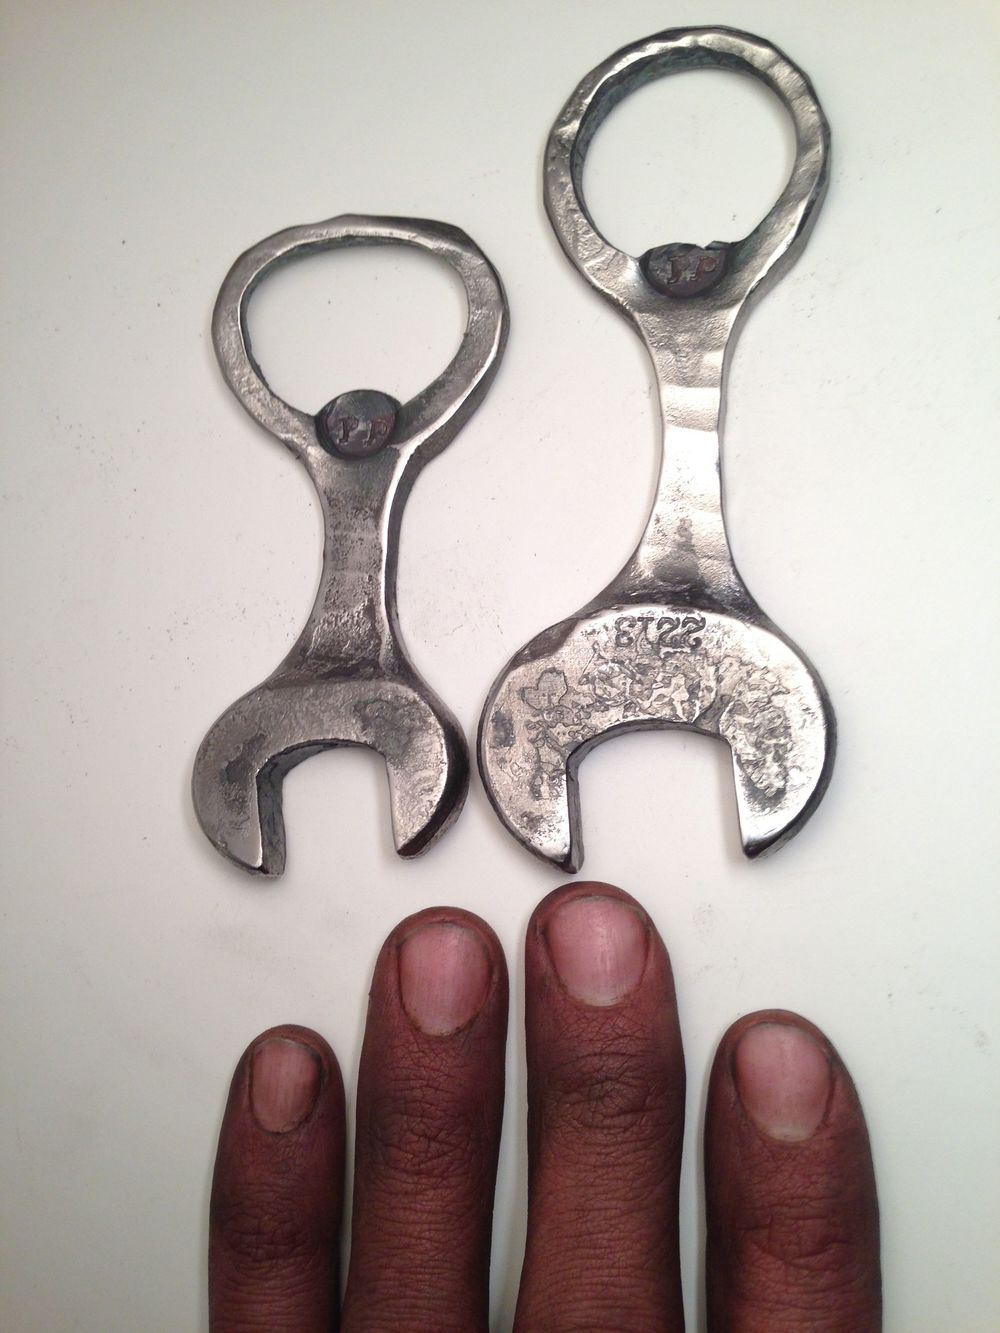 Reforged Wrenches